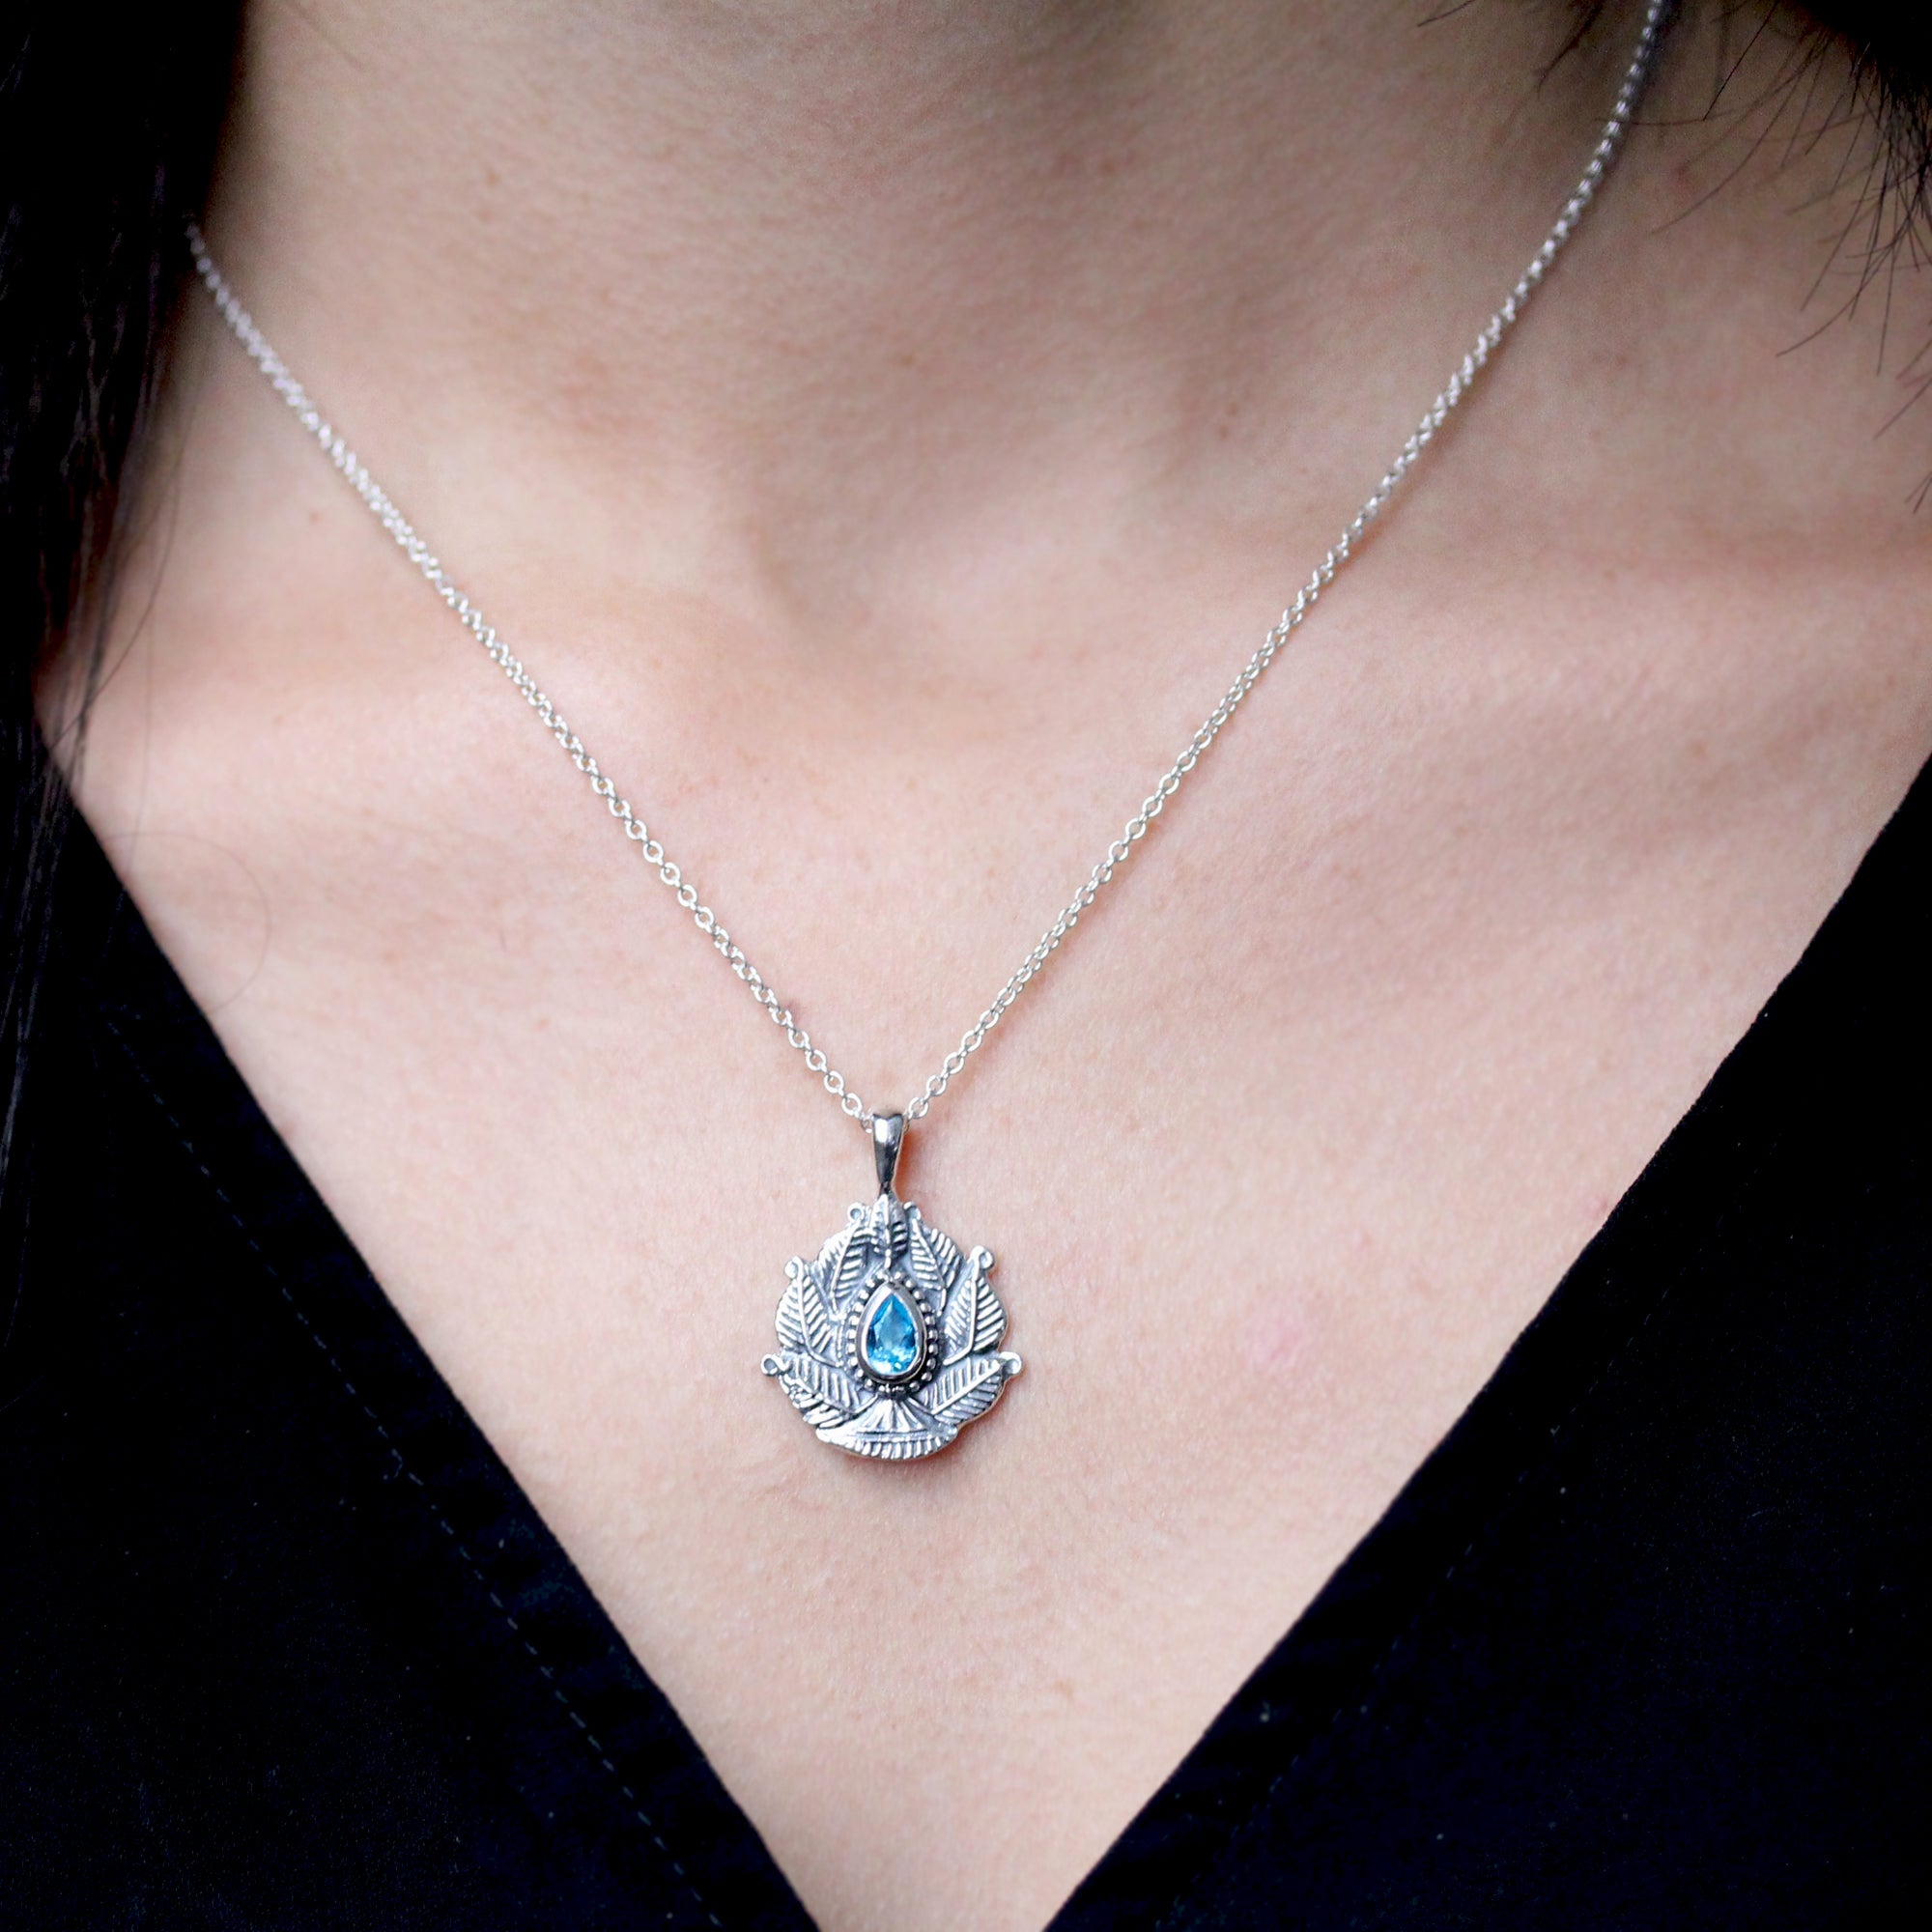 Silver Lotus Necklace Teal Blue Topaz, Sterling Silver